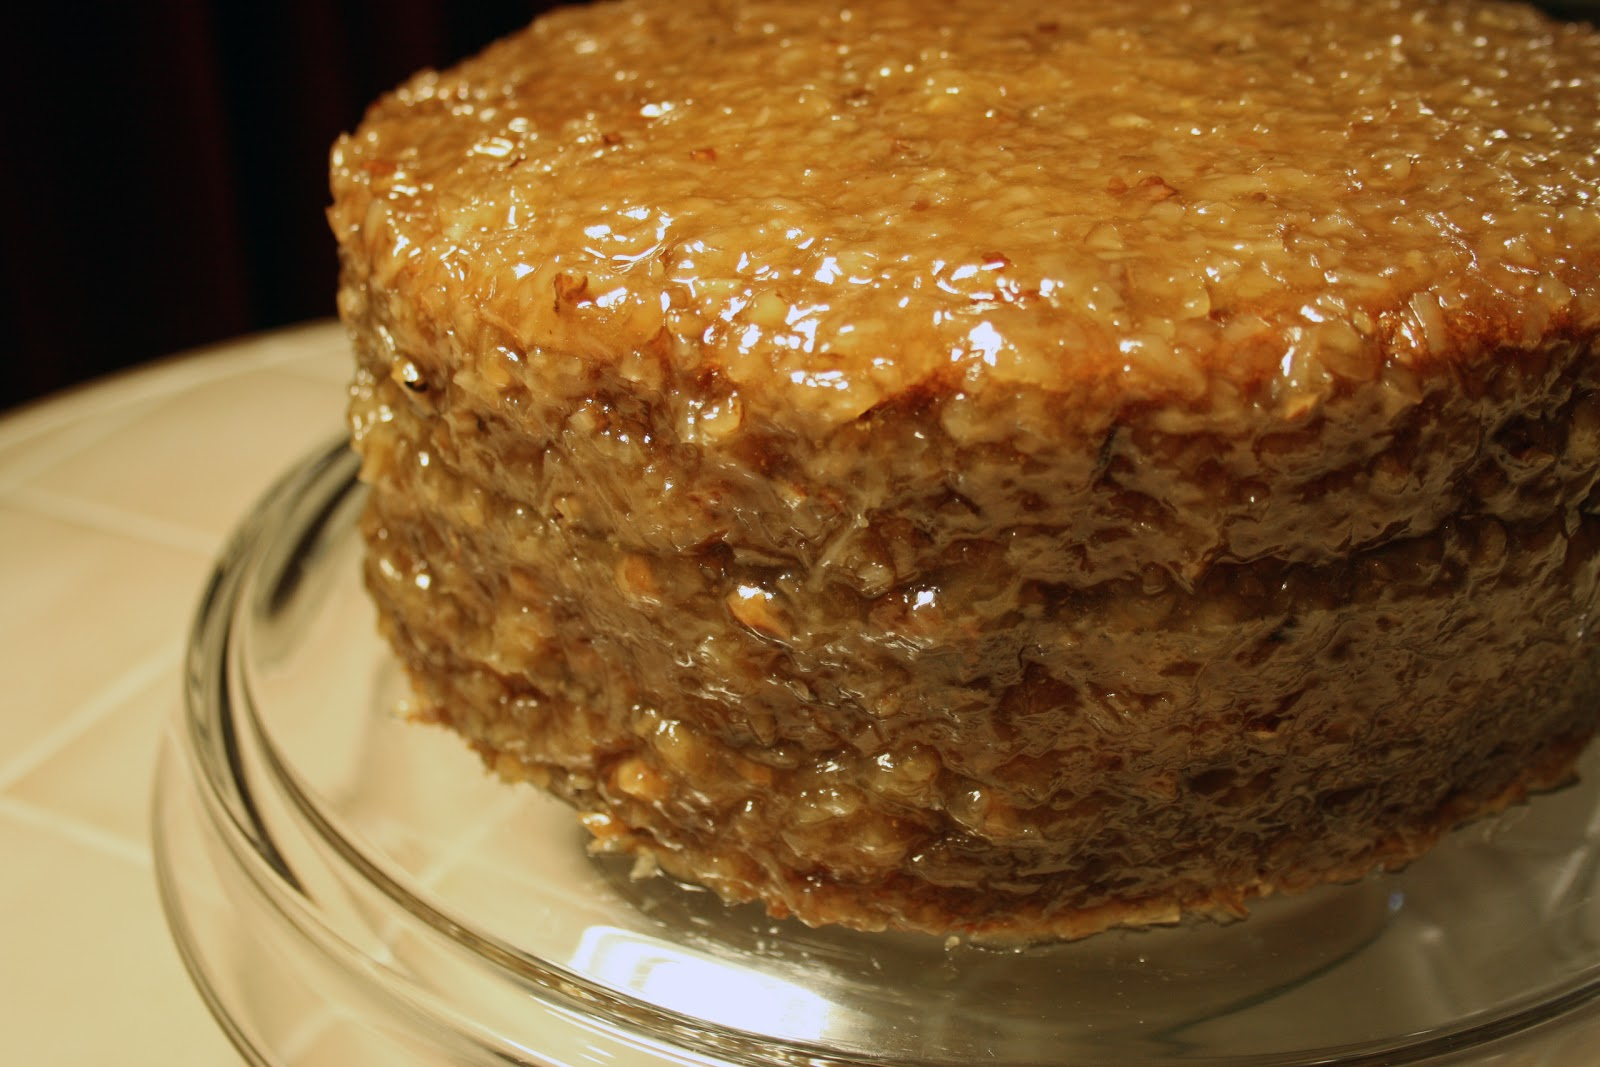 german chocolate cake from scratch german chocolate cake from scratch 4483